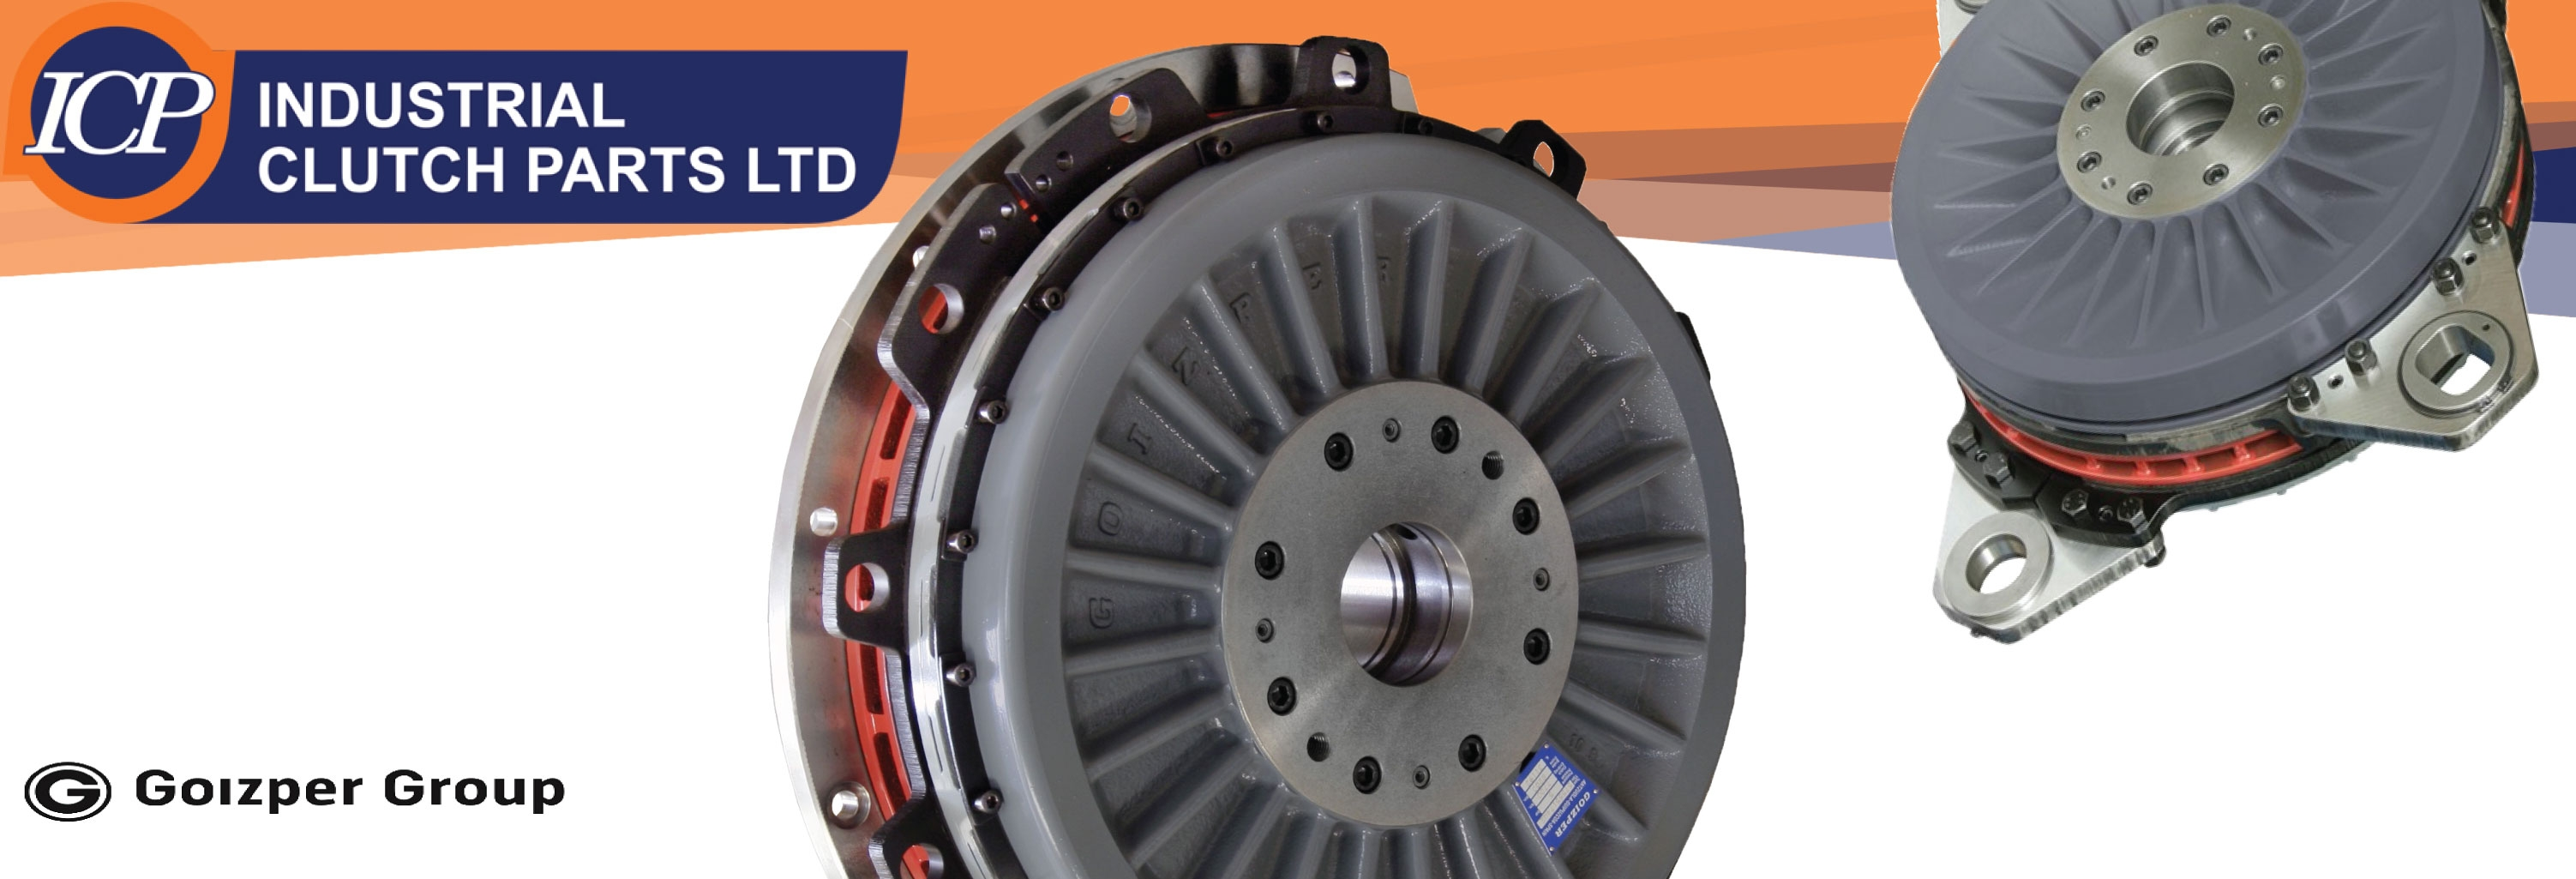 Combination Clutch-Brakes